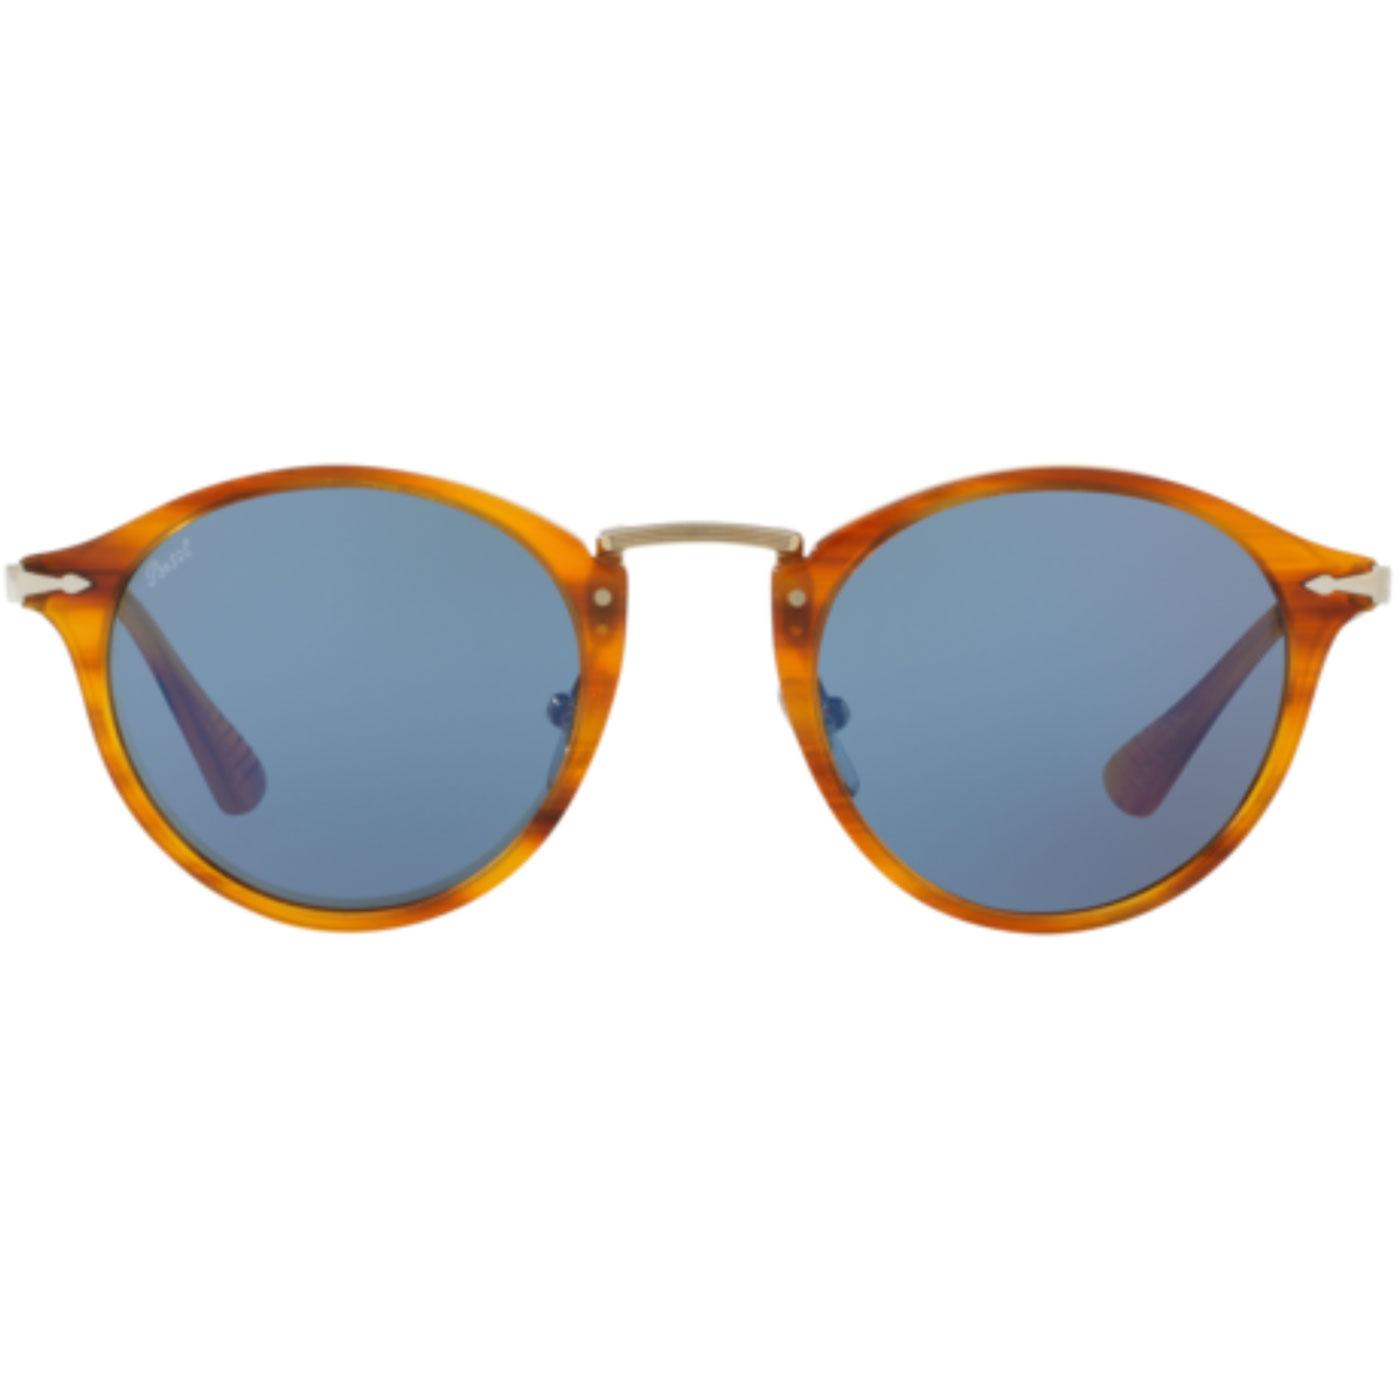 Calligrapher Edition PERSOL Retro Round Sunglasses